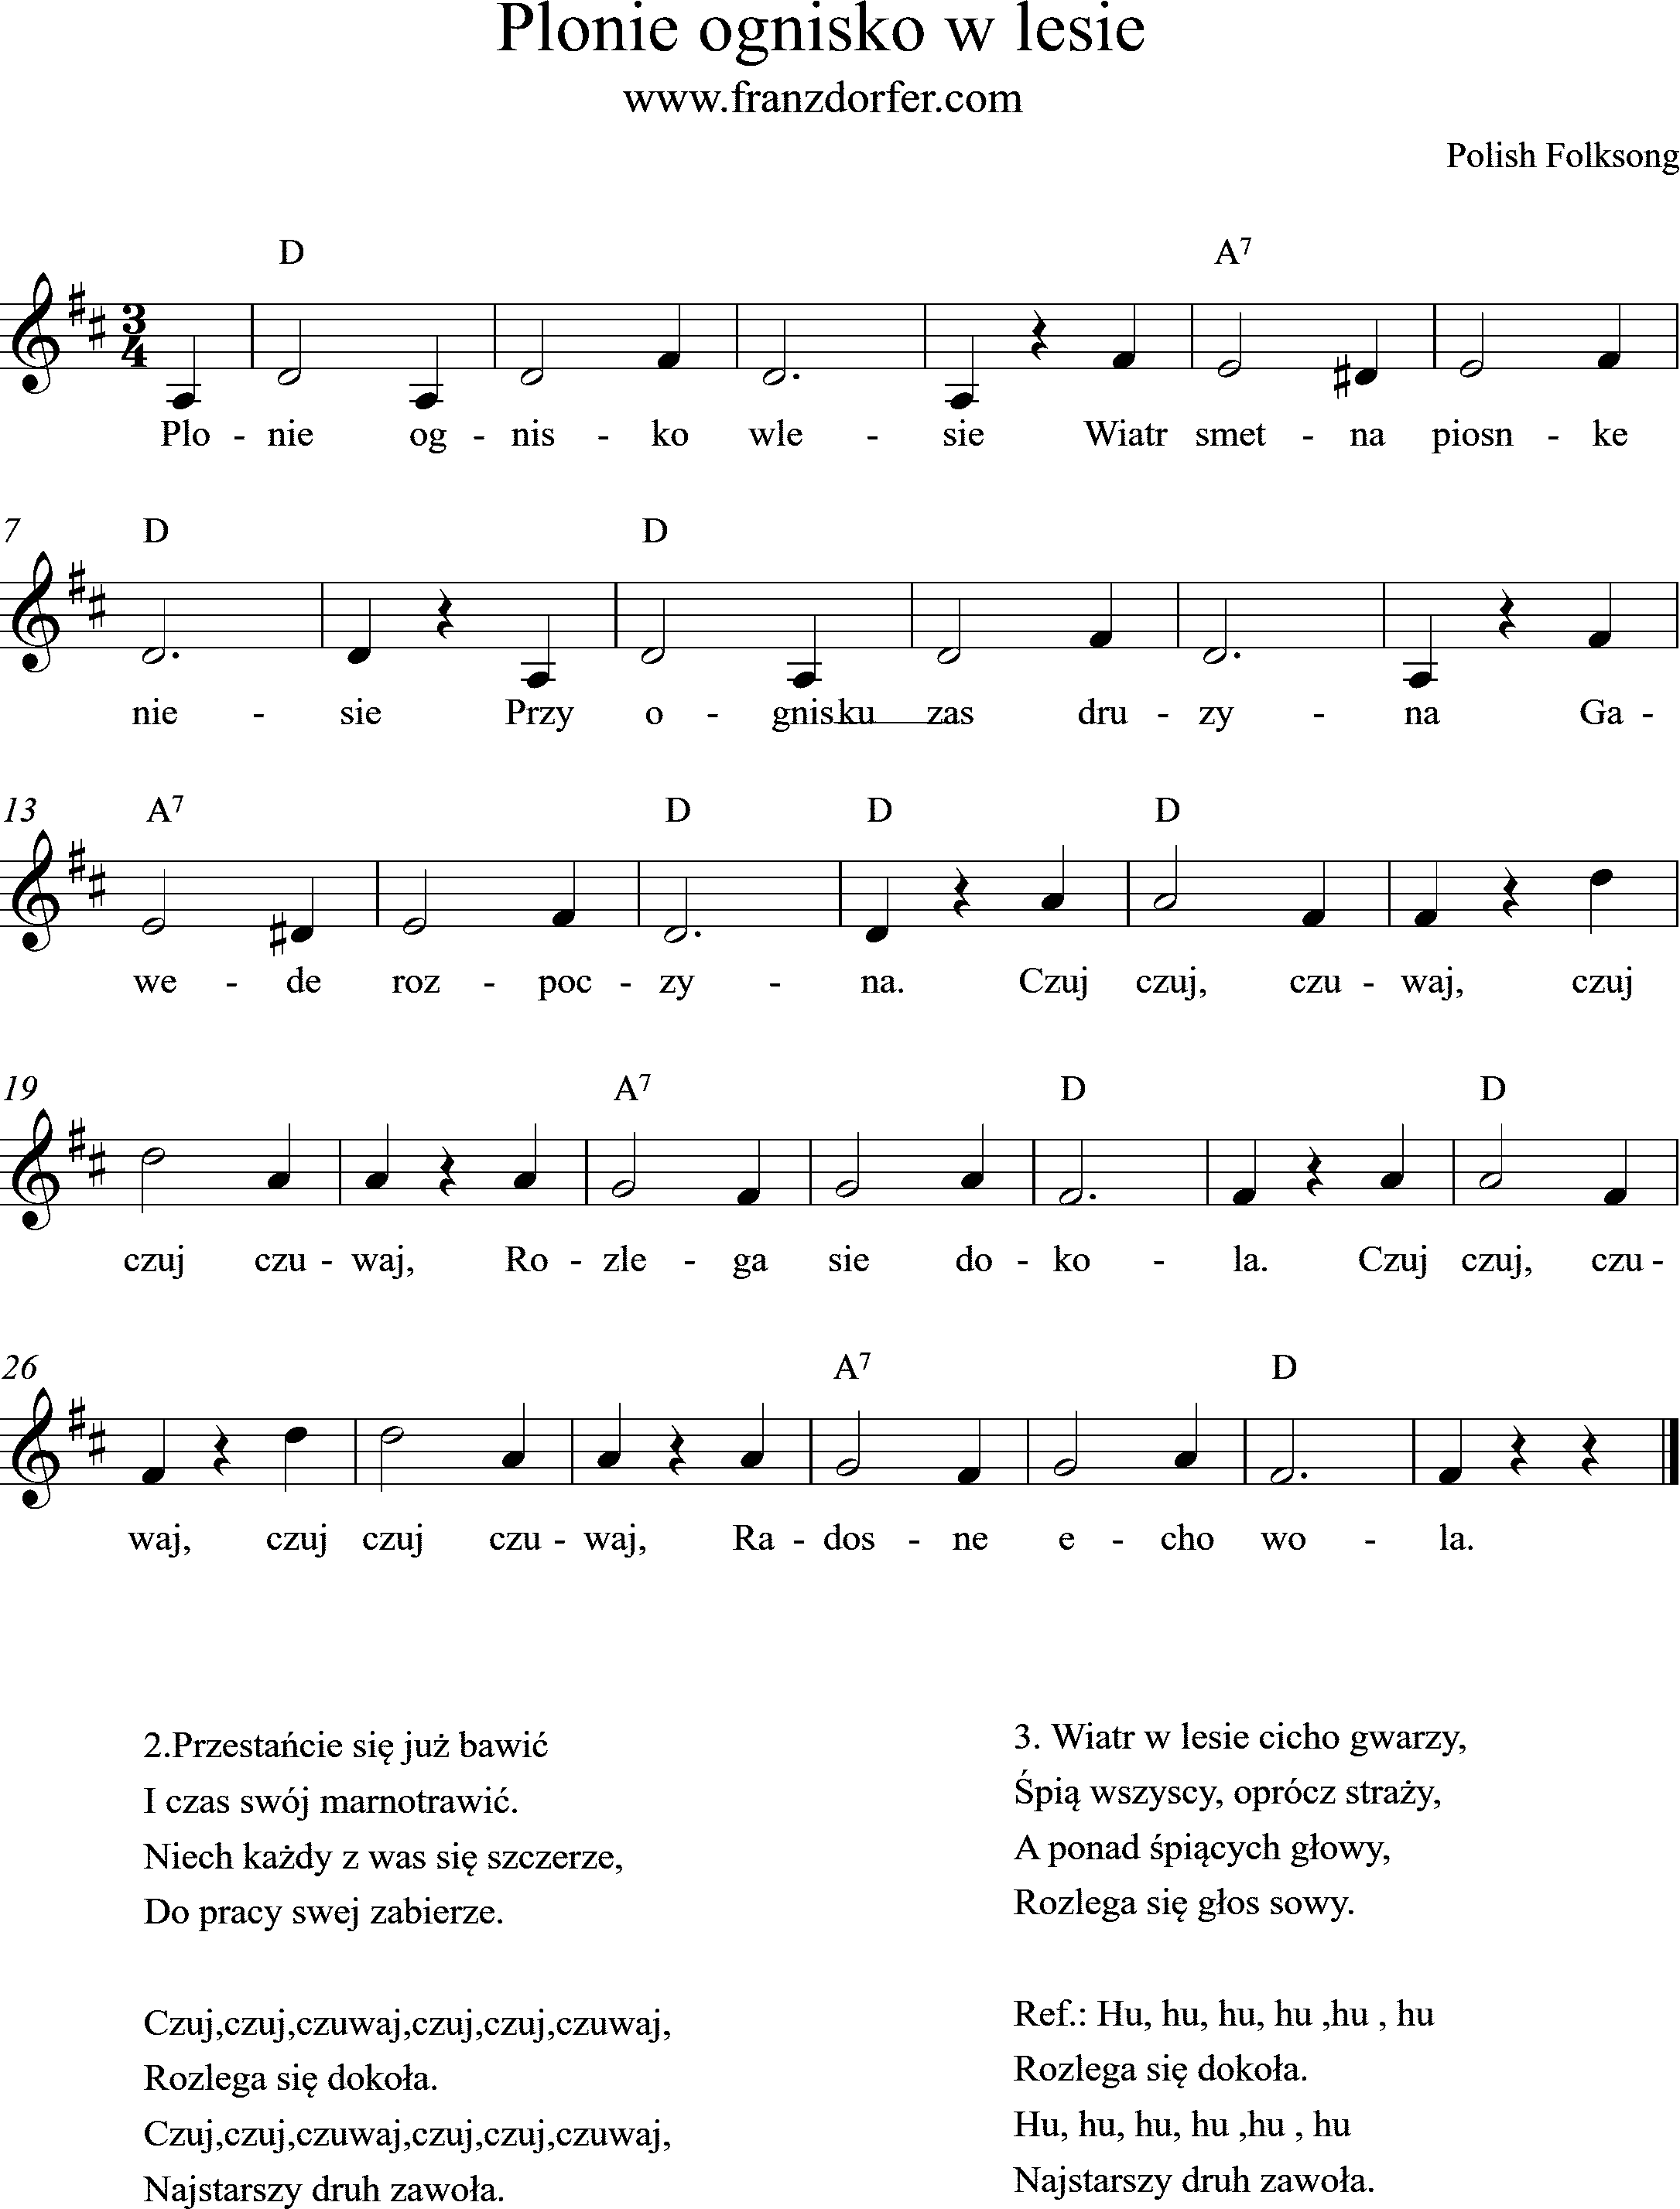 sheetmusic, D-Major, Plonie ognisko